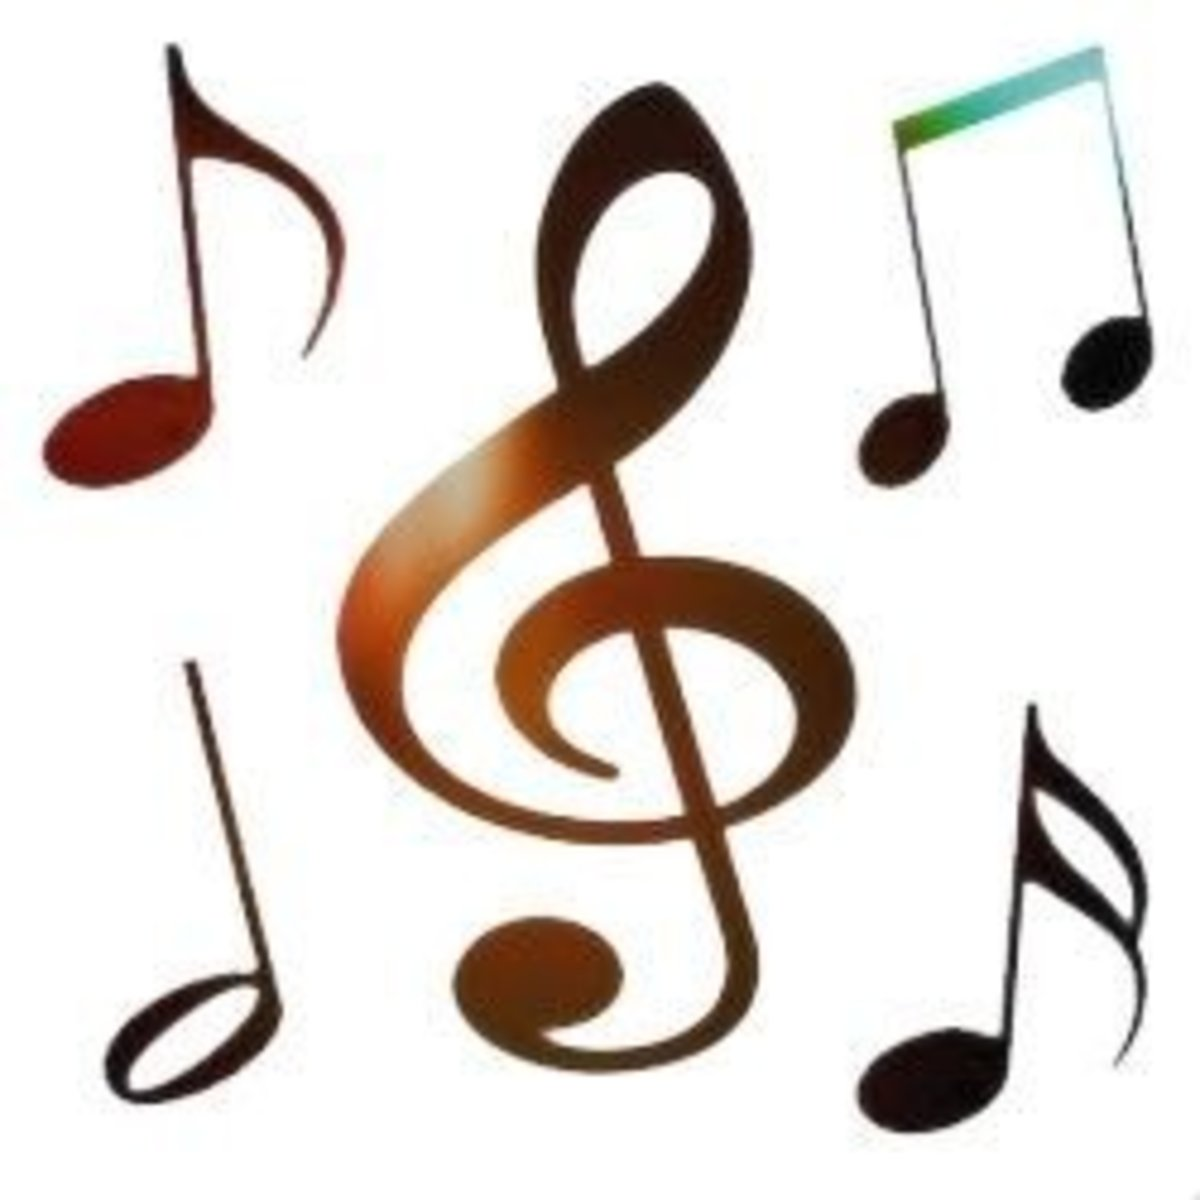 free clip art music notes symbols hubpages rh hubpages com clip art music notes symbols clipart music notes symbols